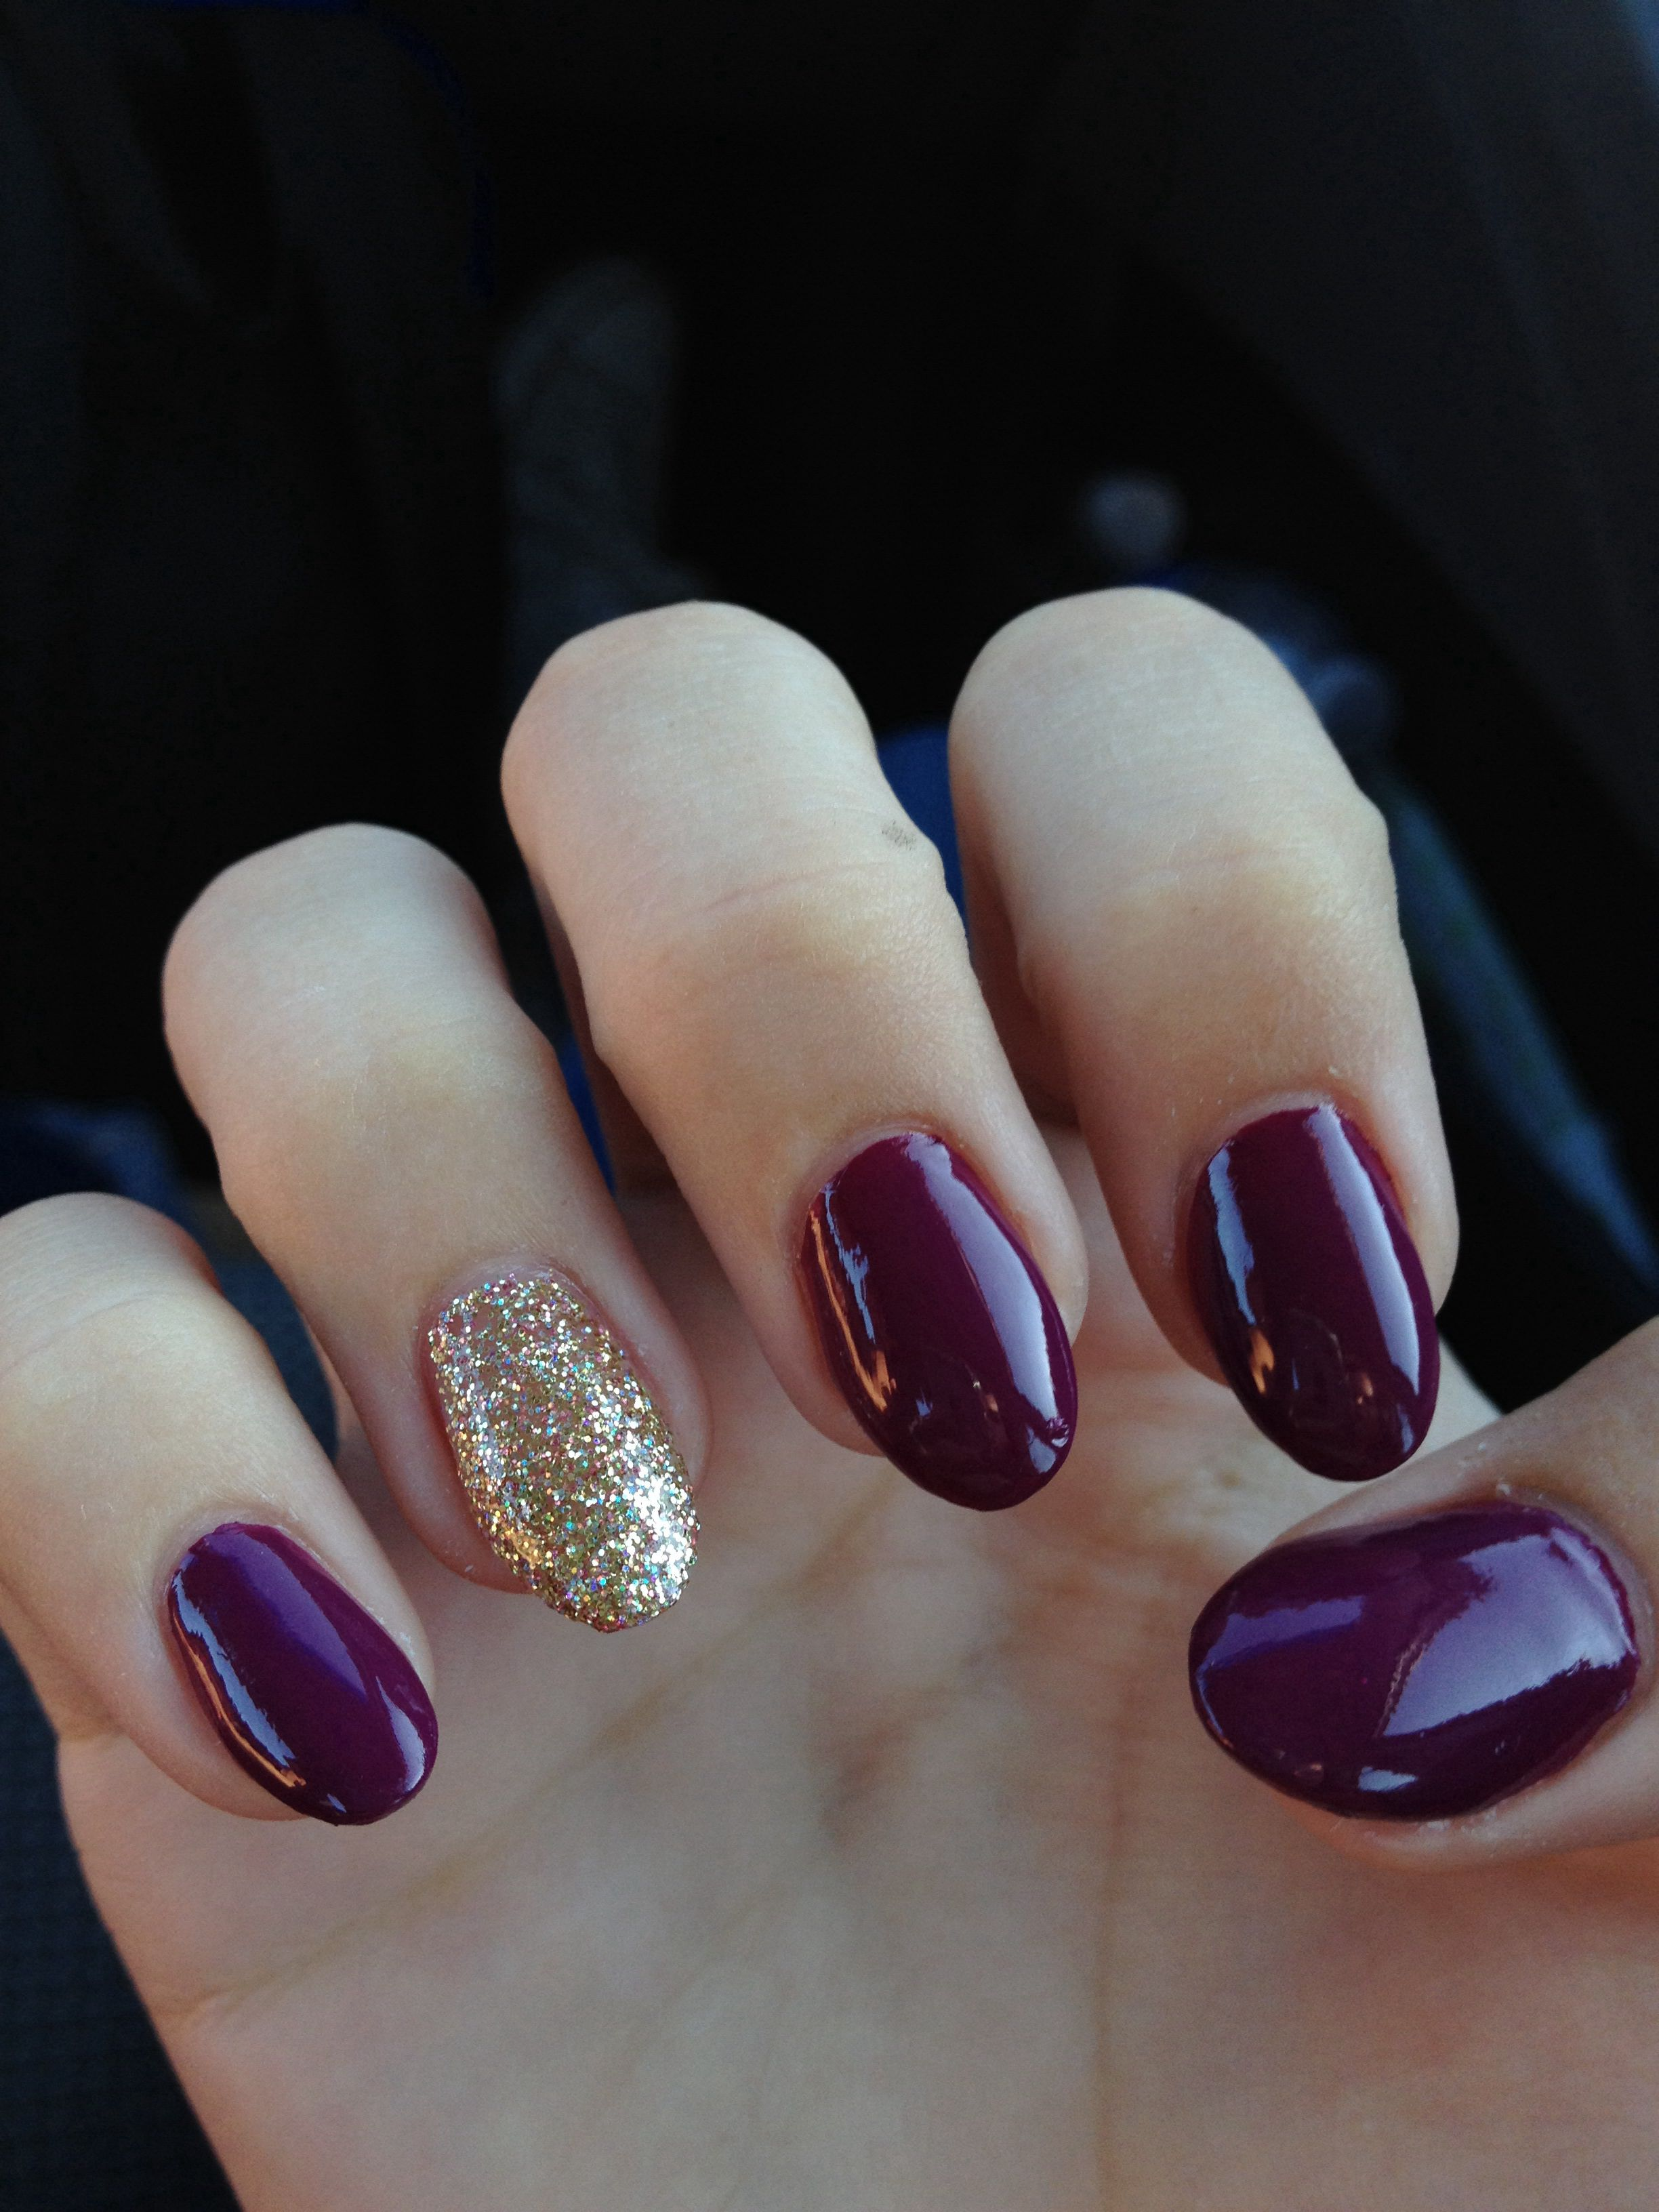 Pin By Olivia Culver On Dolled Up Oval Nails Designs Oval Acrylic Nails Maroon Nails